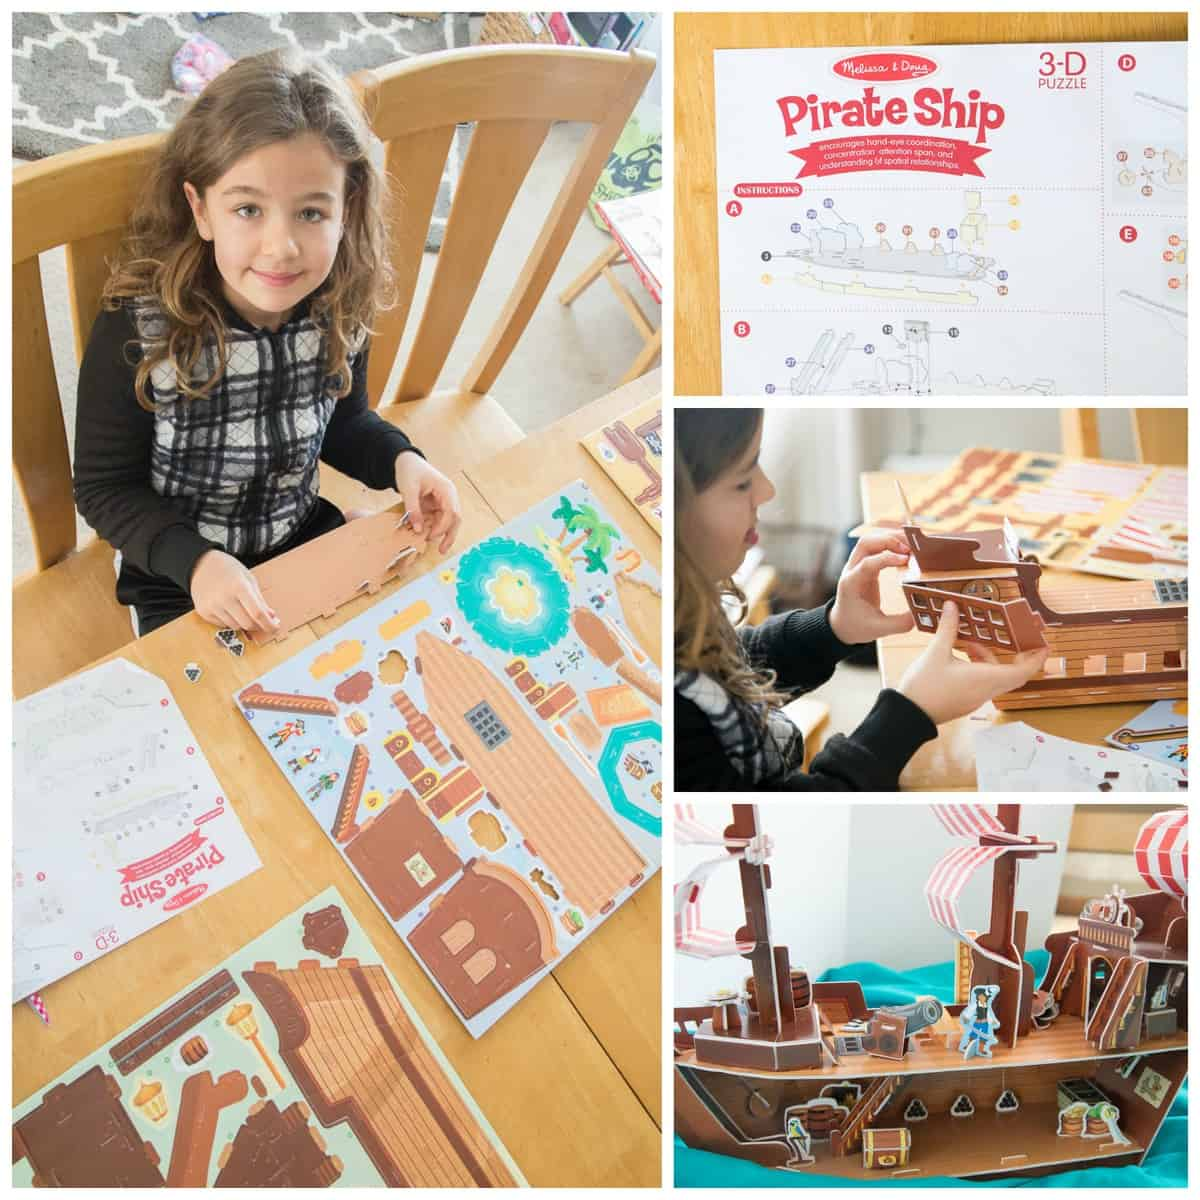 Stop Motion Animation for Kids: A super-simple tutorial for children *This is so cool. Love this 3D pirate ship puzzle they used in their project.